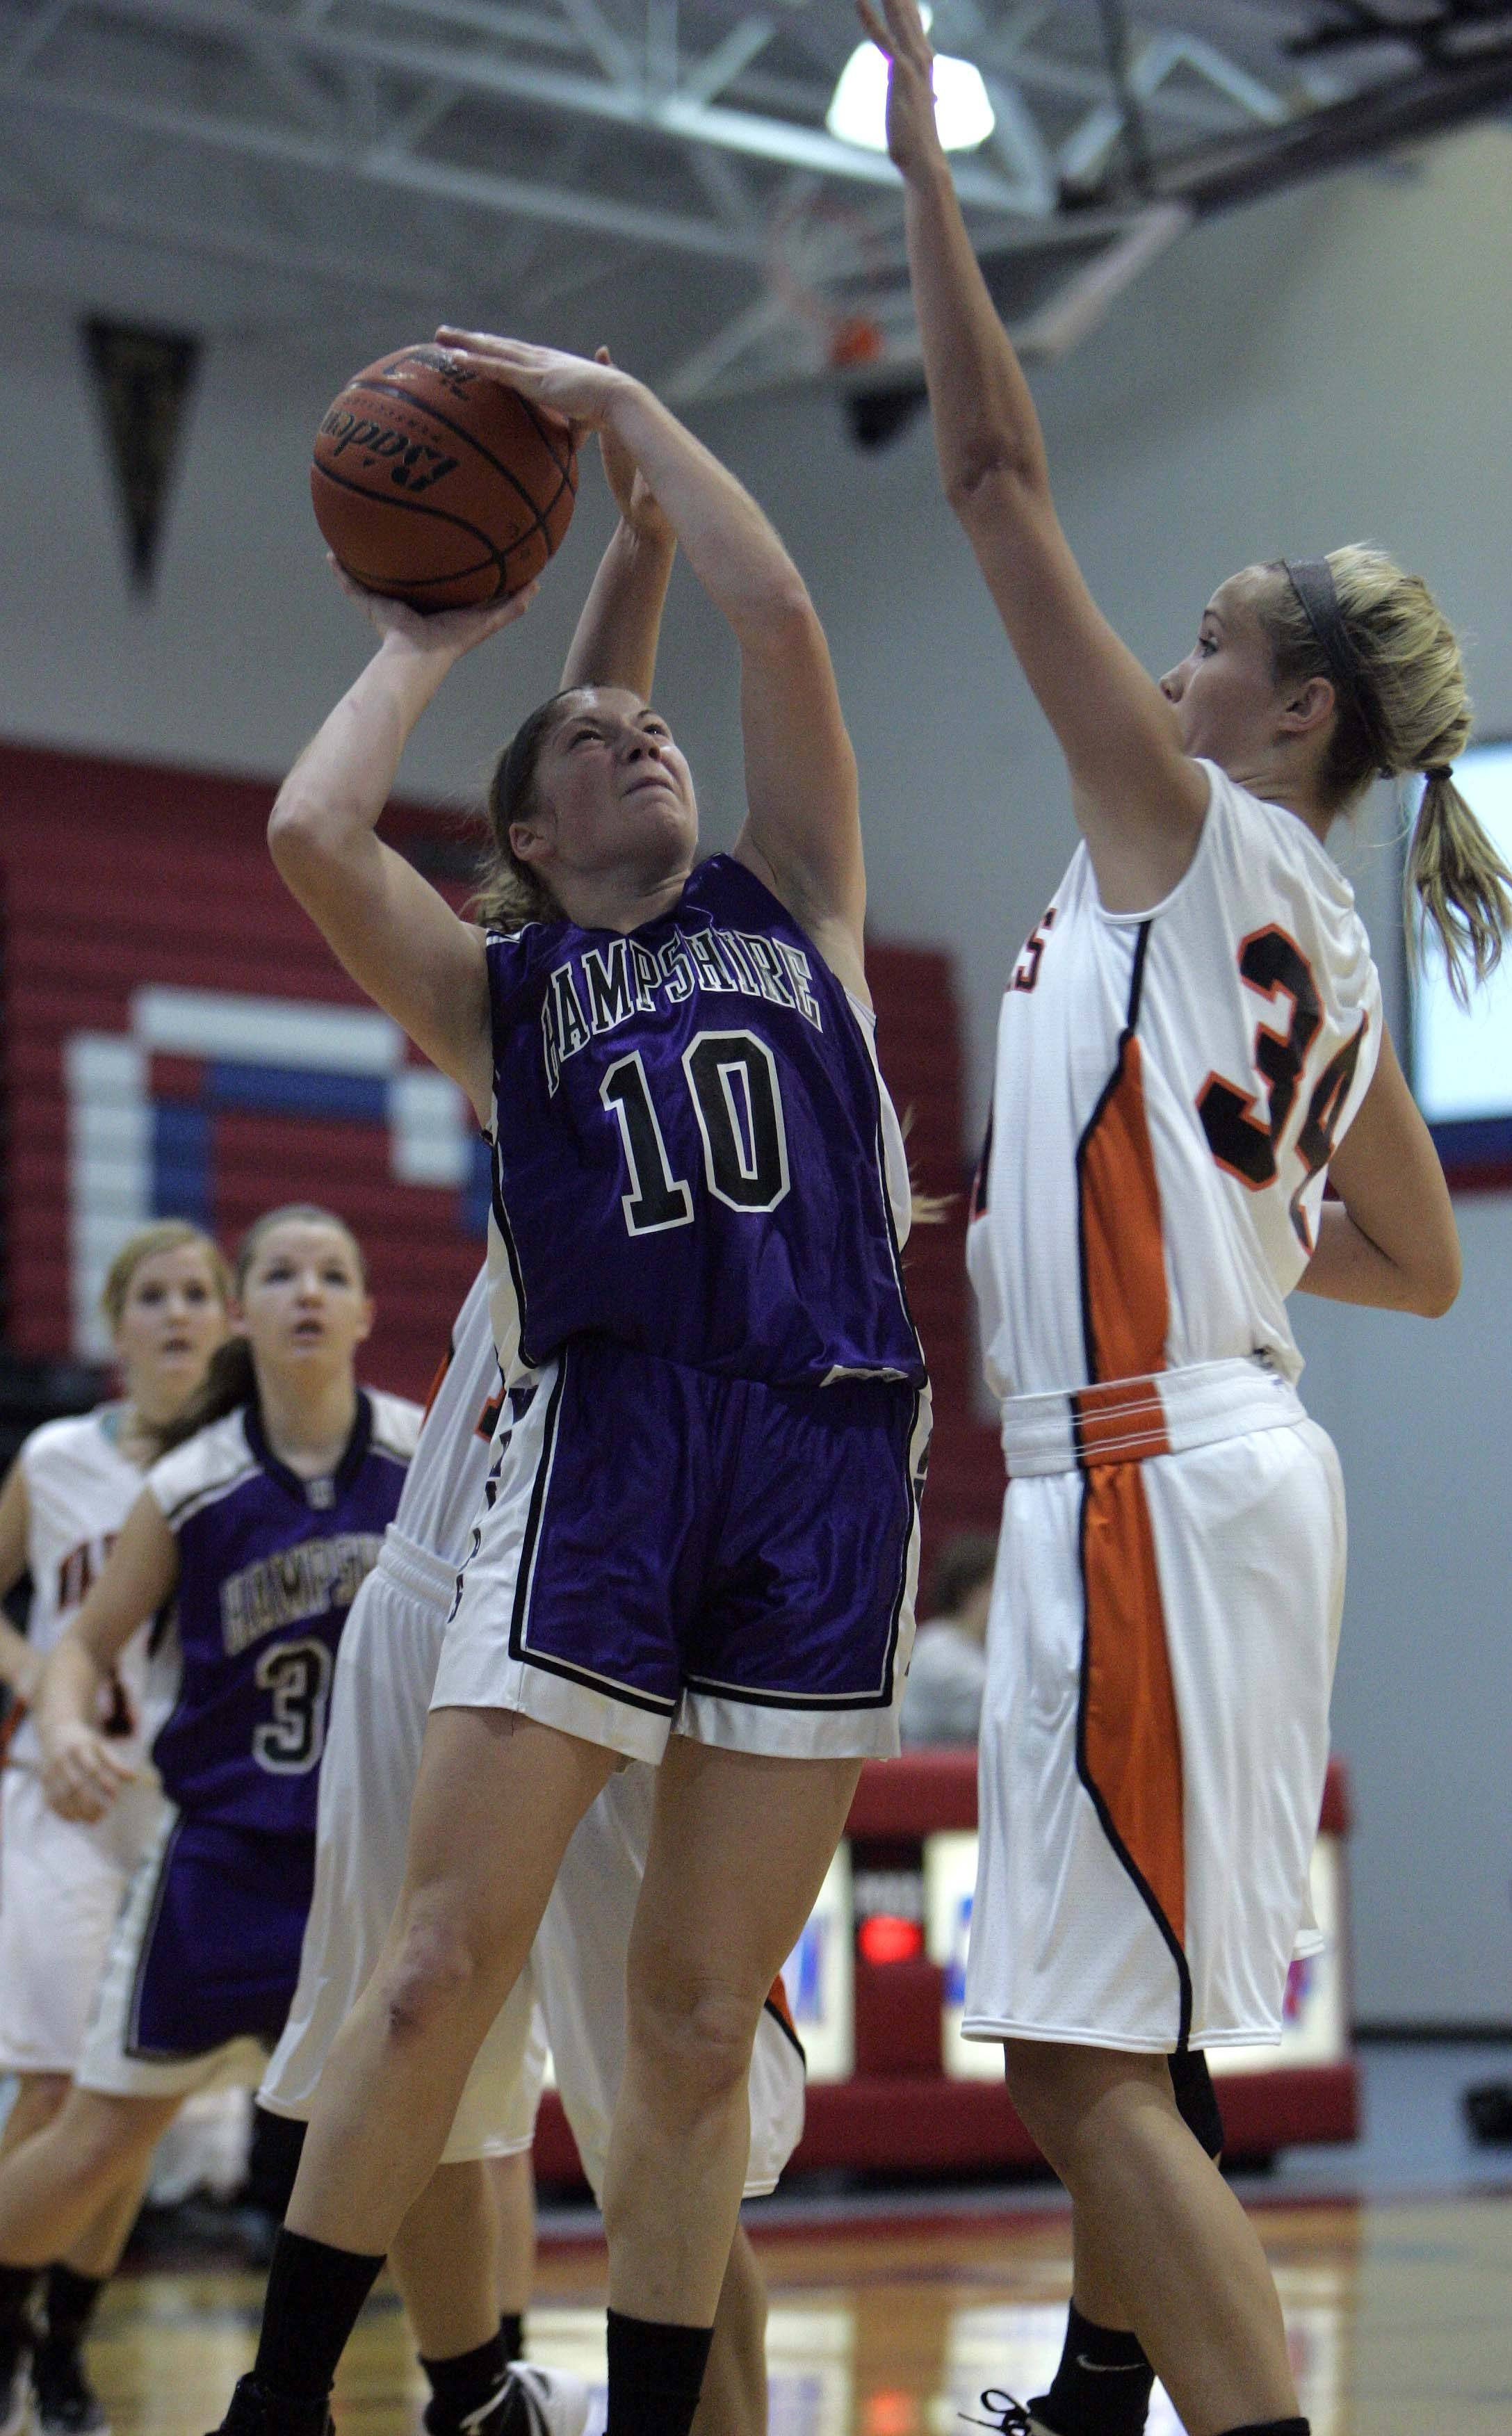 Hampshire's Jennifer Dumoulin (10) puts up a shot against McHenry center Meghan Martell (34) during Hampshire vs McHenry girls basketball at the Dundee-Crown tournament Saturday, November 19, 2011 in Carpentersville.